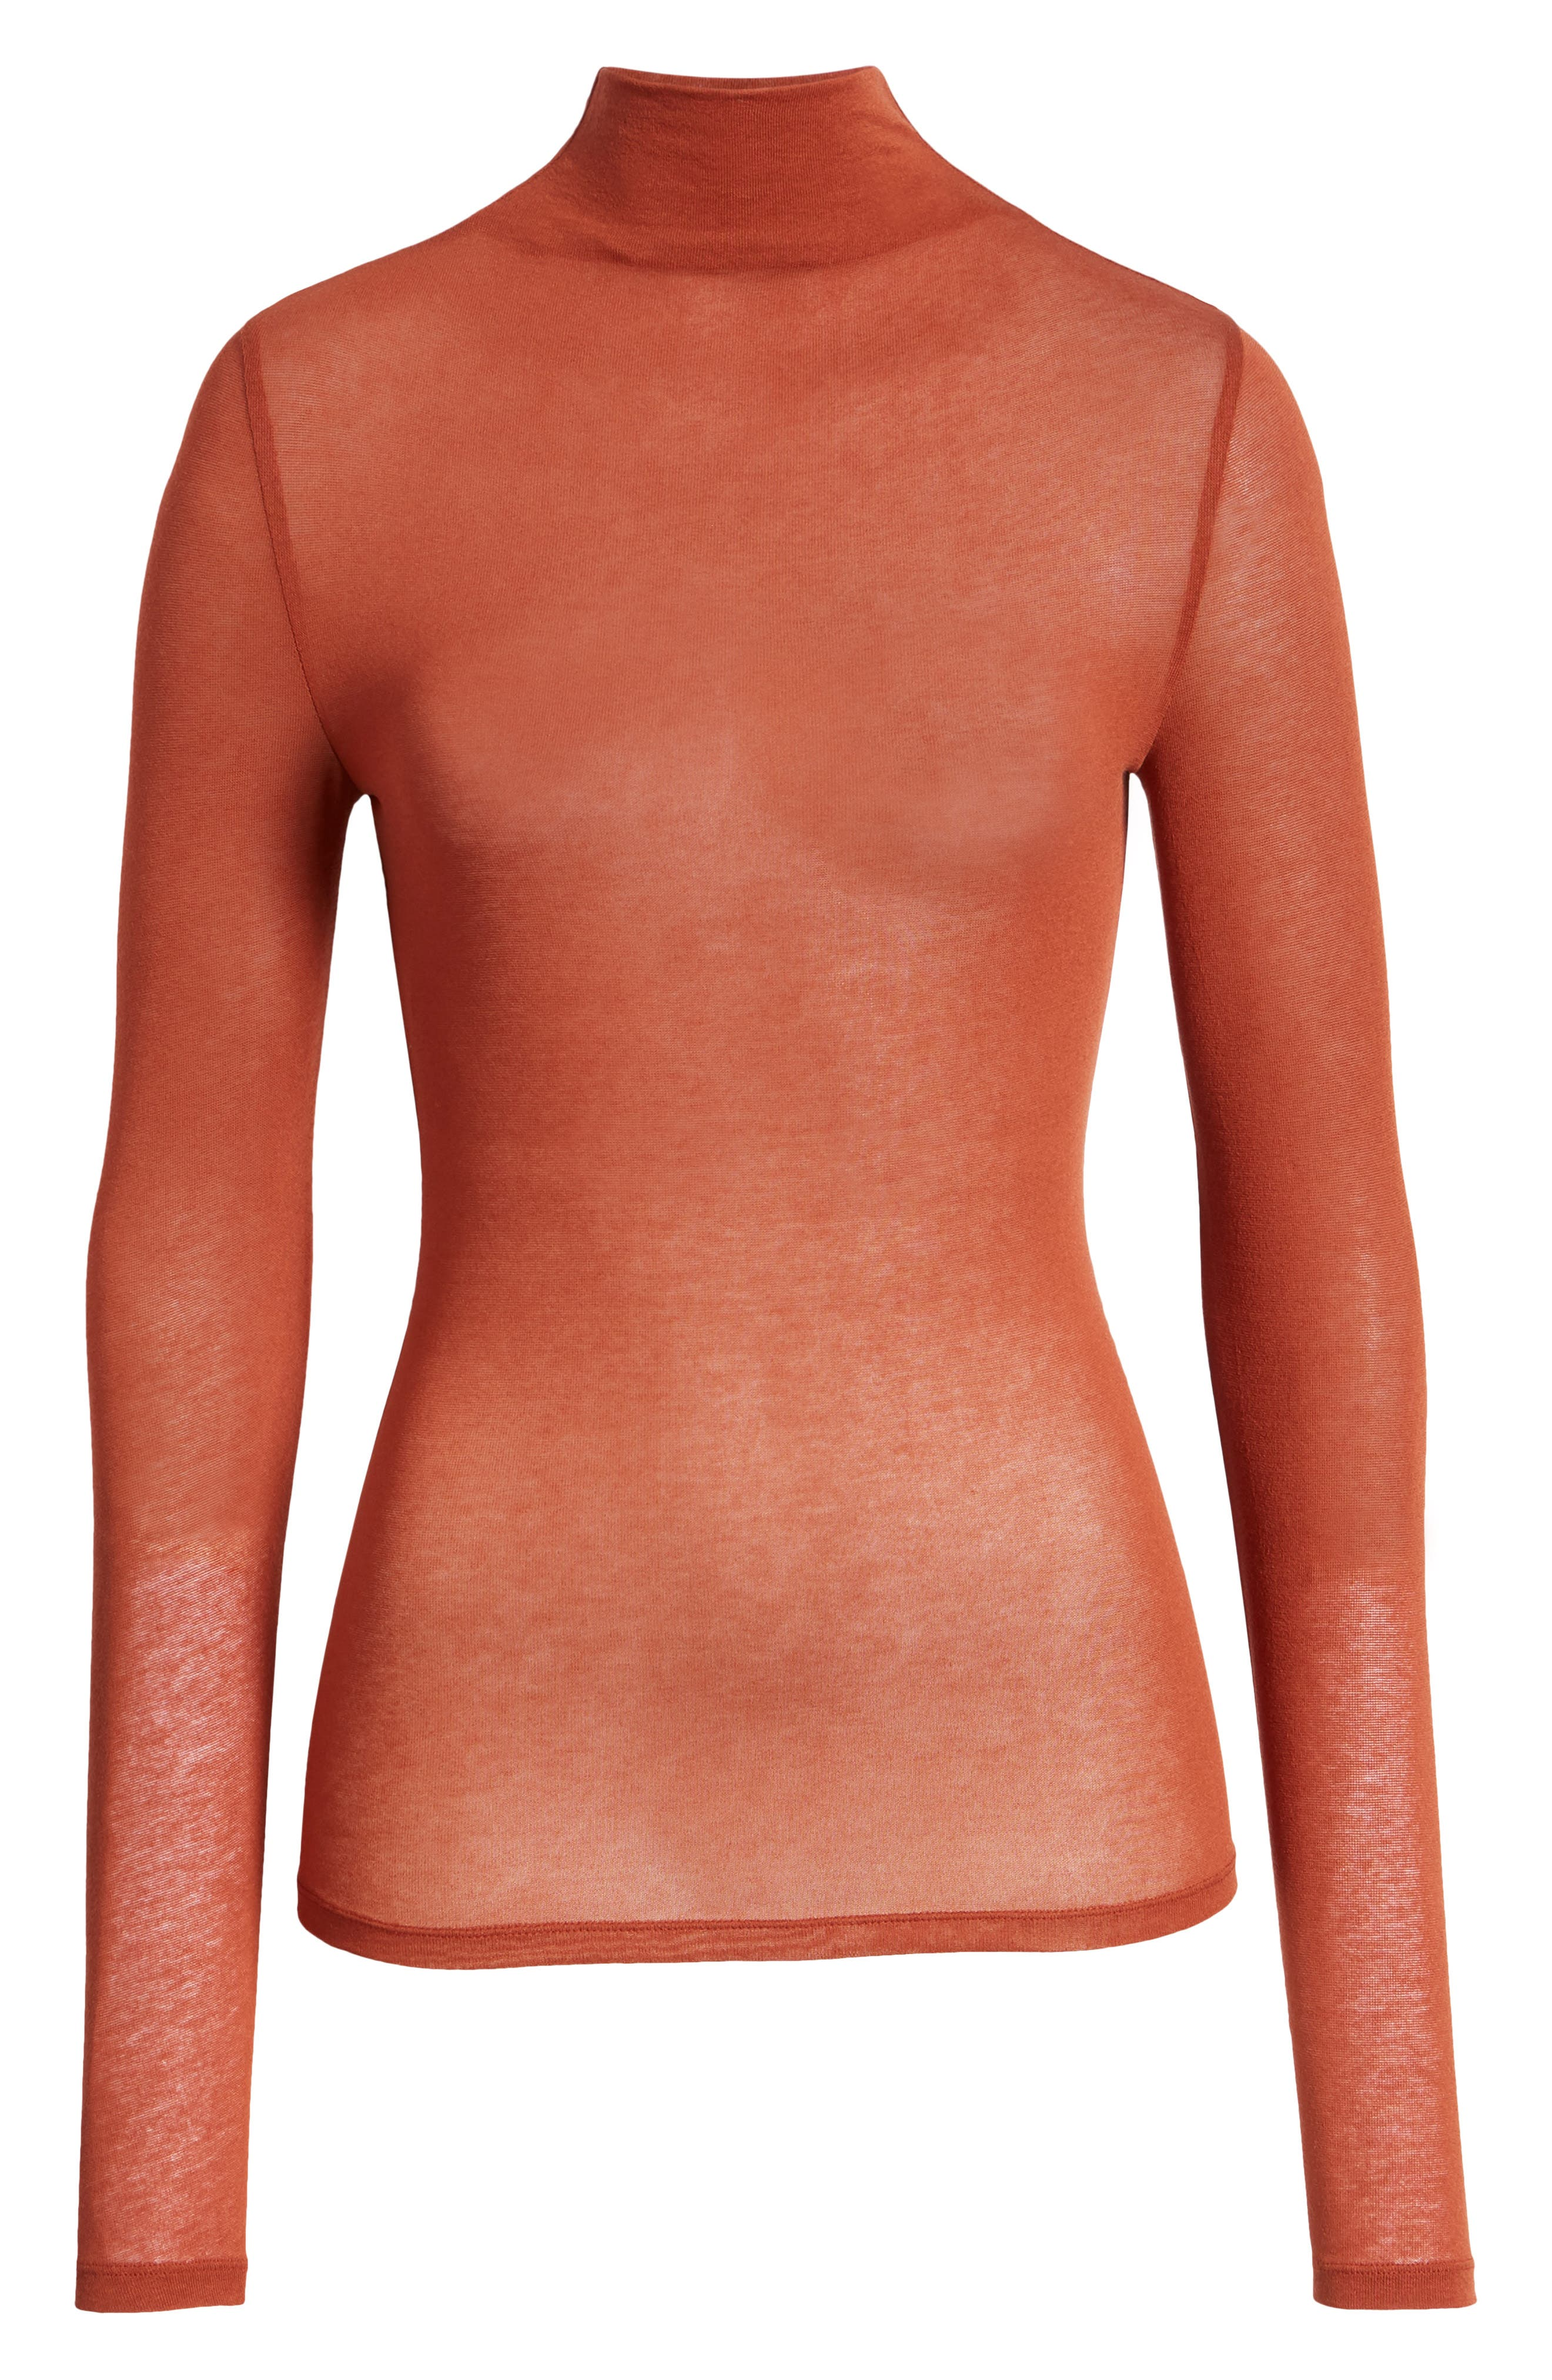 Lightweight Long Sleeve Funnel Neck Top,                             Alternate thumbnail 8, color,                             BROWN SPICE